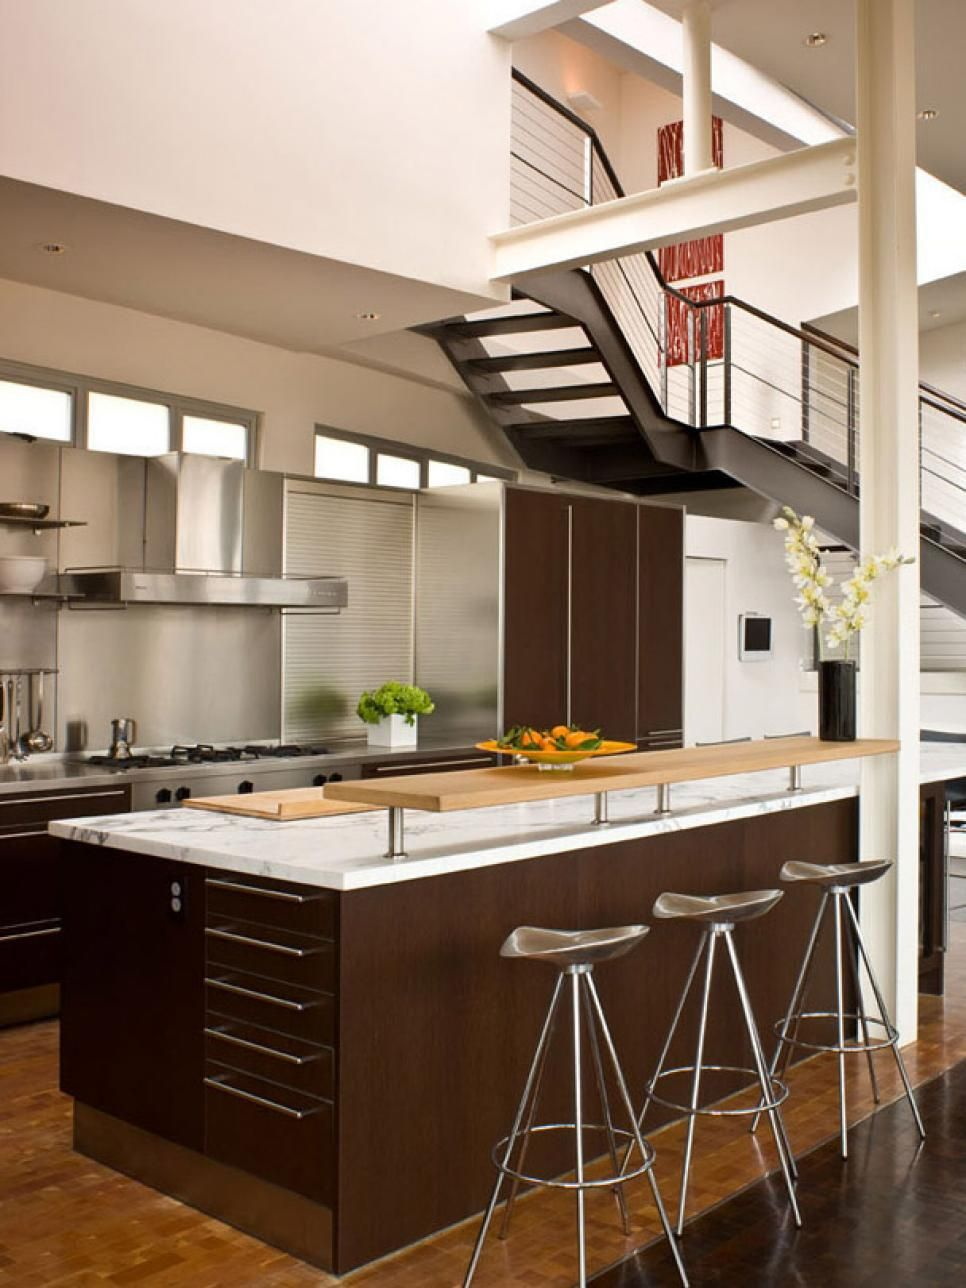 20 20 kitchen design. HGTV experts share 20 sexy modern kitchens with sleek lines and no clutter  These designs Hot in Here Sexy Modern Kitchens Hgtv Small kitchen layouts